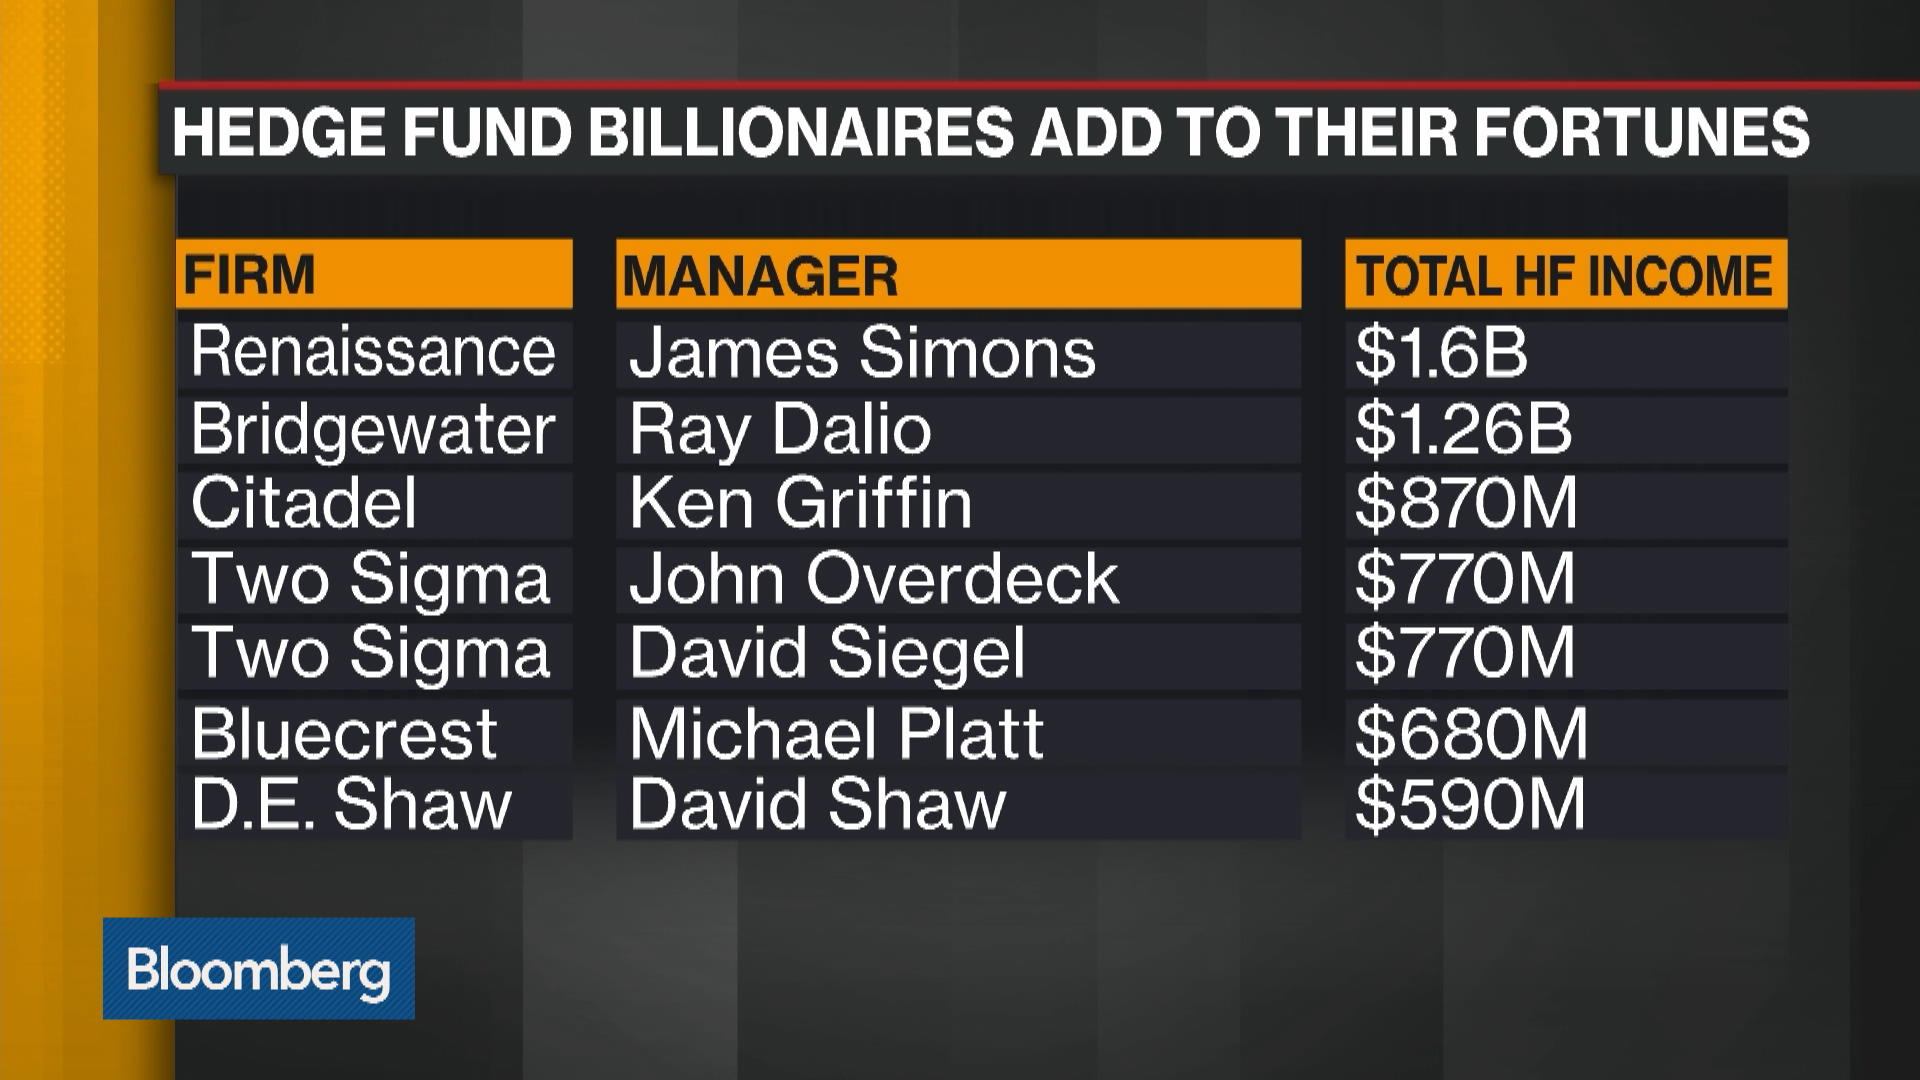 The Best-Paid Hedge Fund Managers Made $7 7 Billion in 2018 - Bloomberg